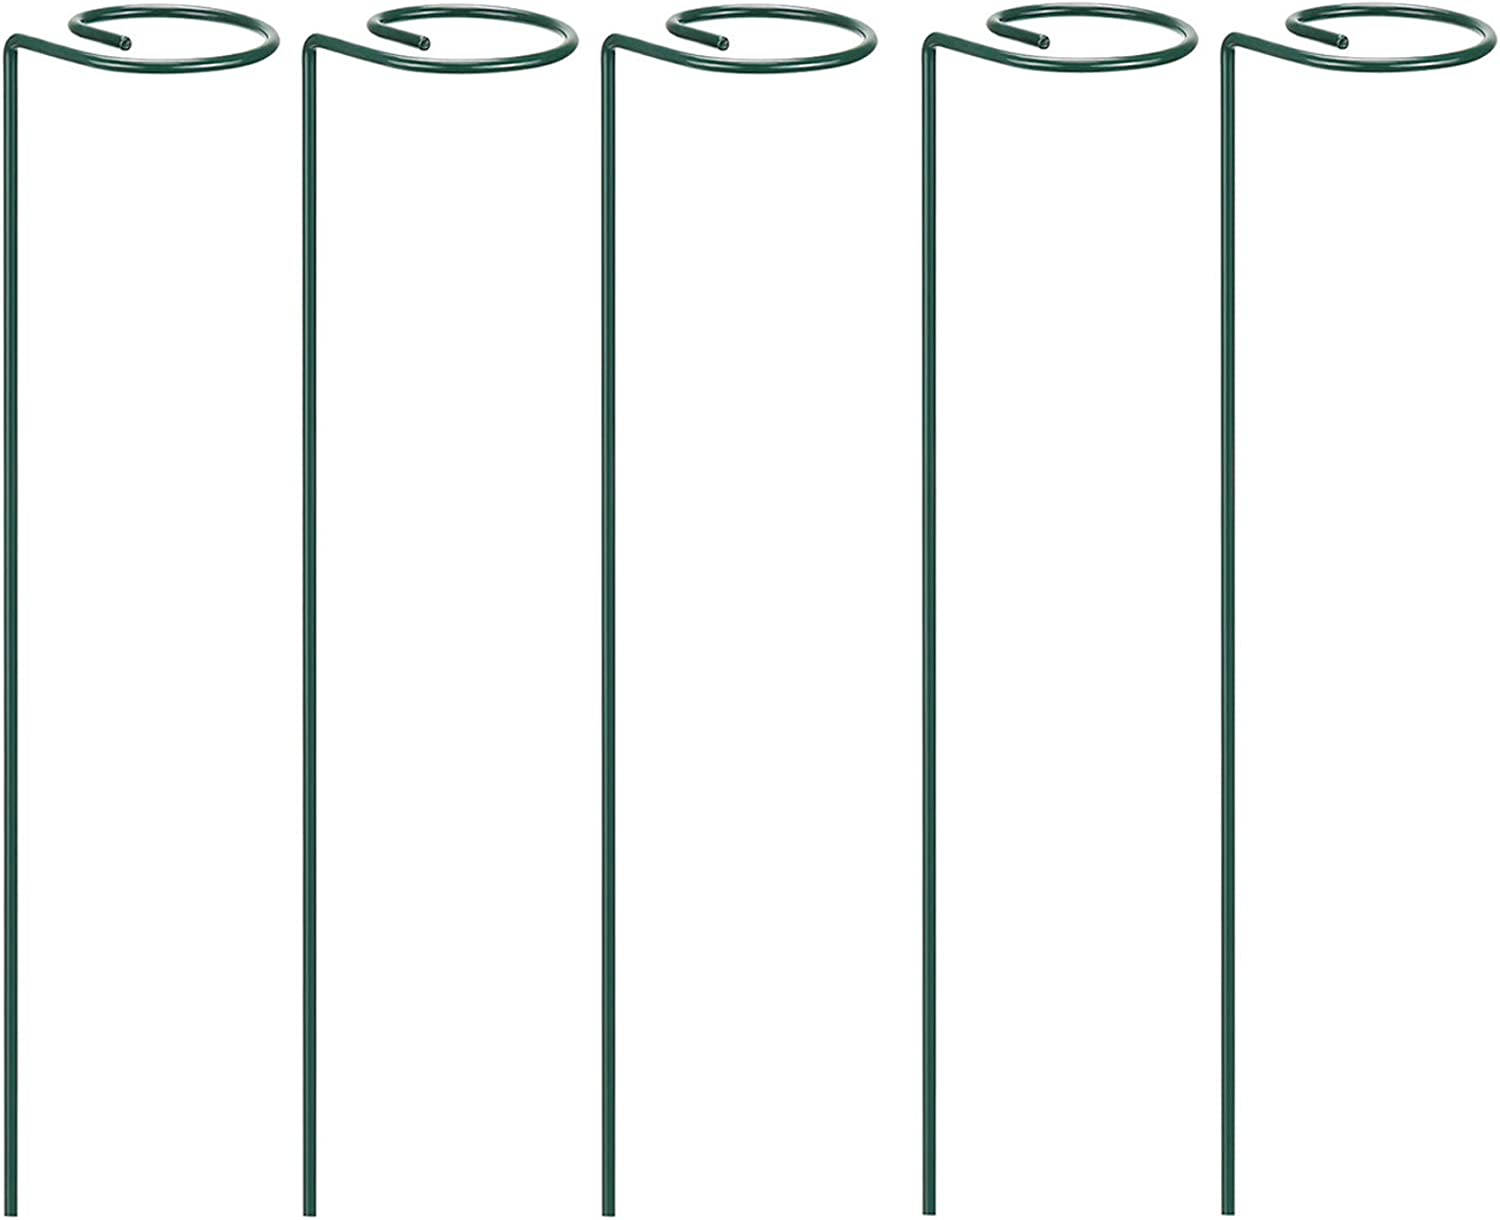 Acronde 5 PCS Single Stem Plant Support Ring for Plant Support for Amaryllis Tomatoes Orchid Lily Peony Rose Flower Stem, Plant Cage, Plant Support